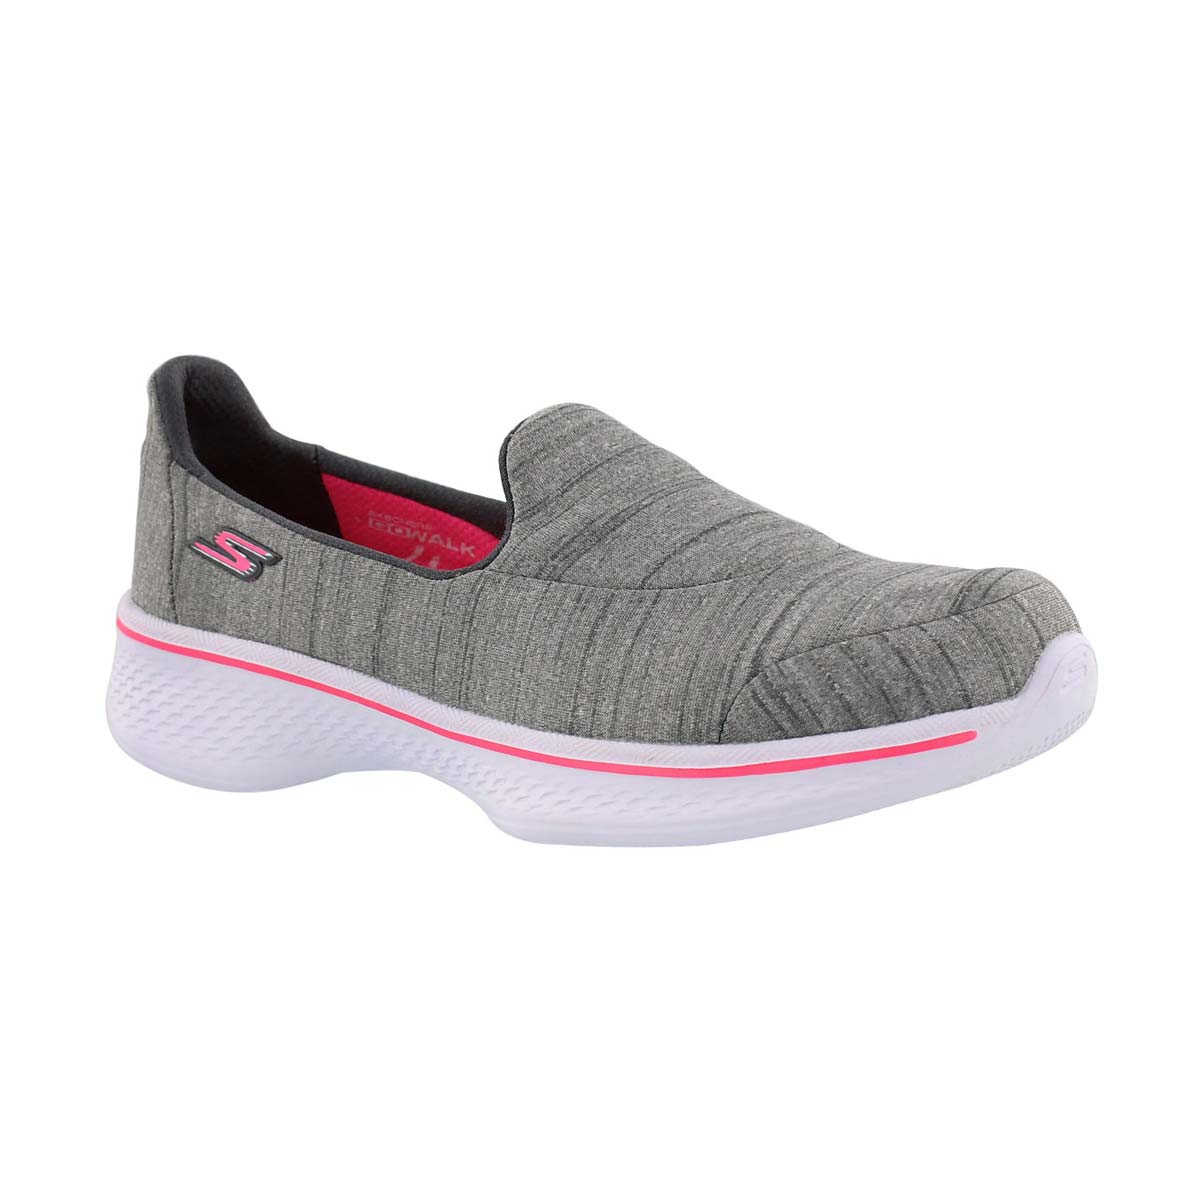 Girls' GOwalk 4 SATISFY grey slip on sneakers